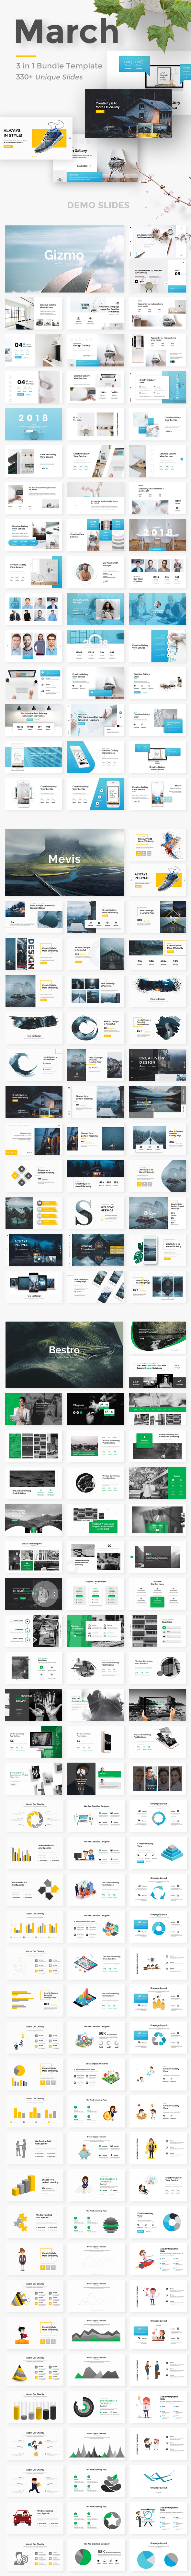 3 in 1 March Bundle Creative Powerpoint Template - Creative PowerPoint Templates